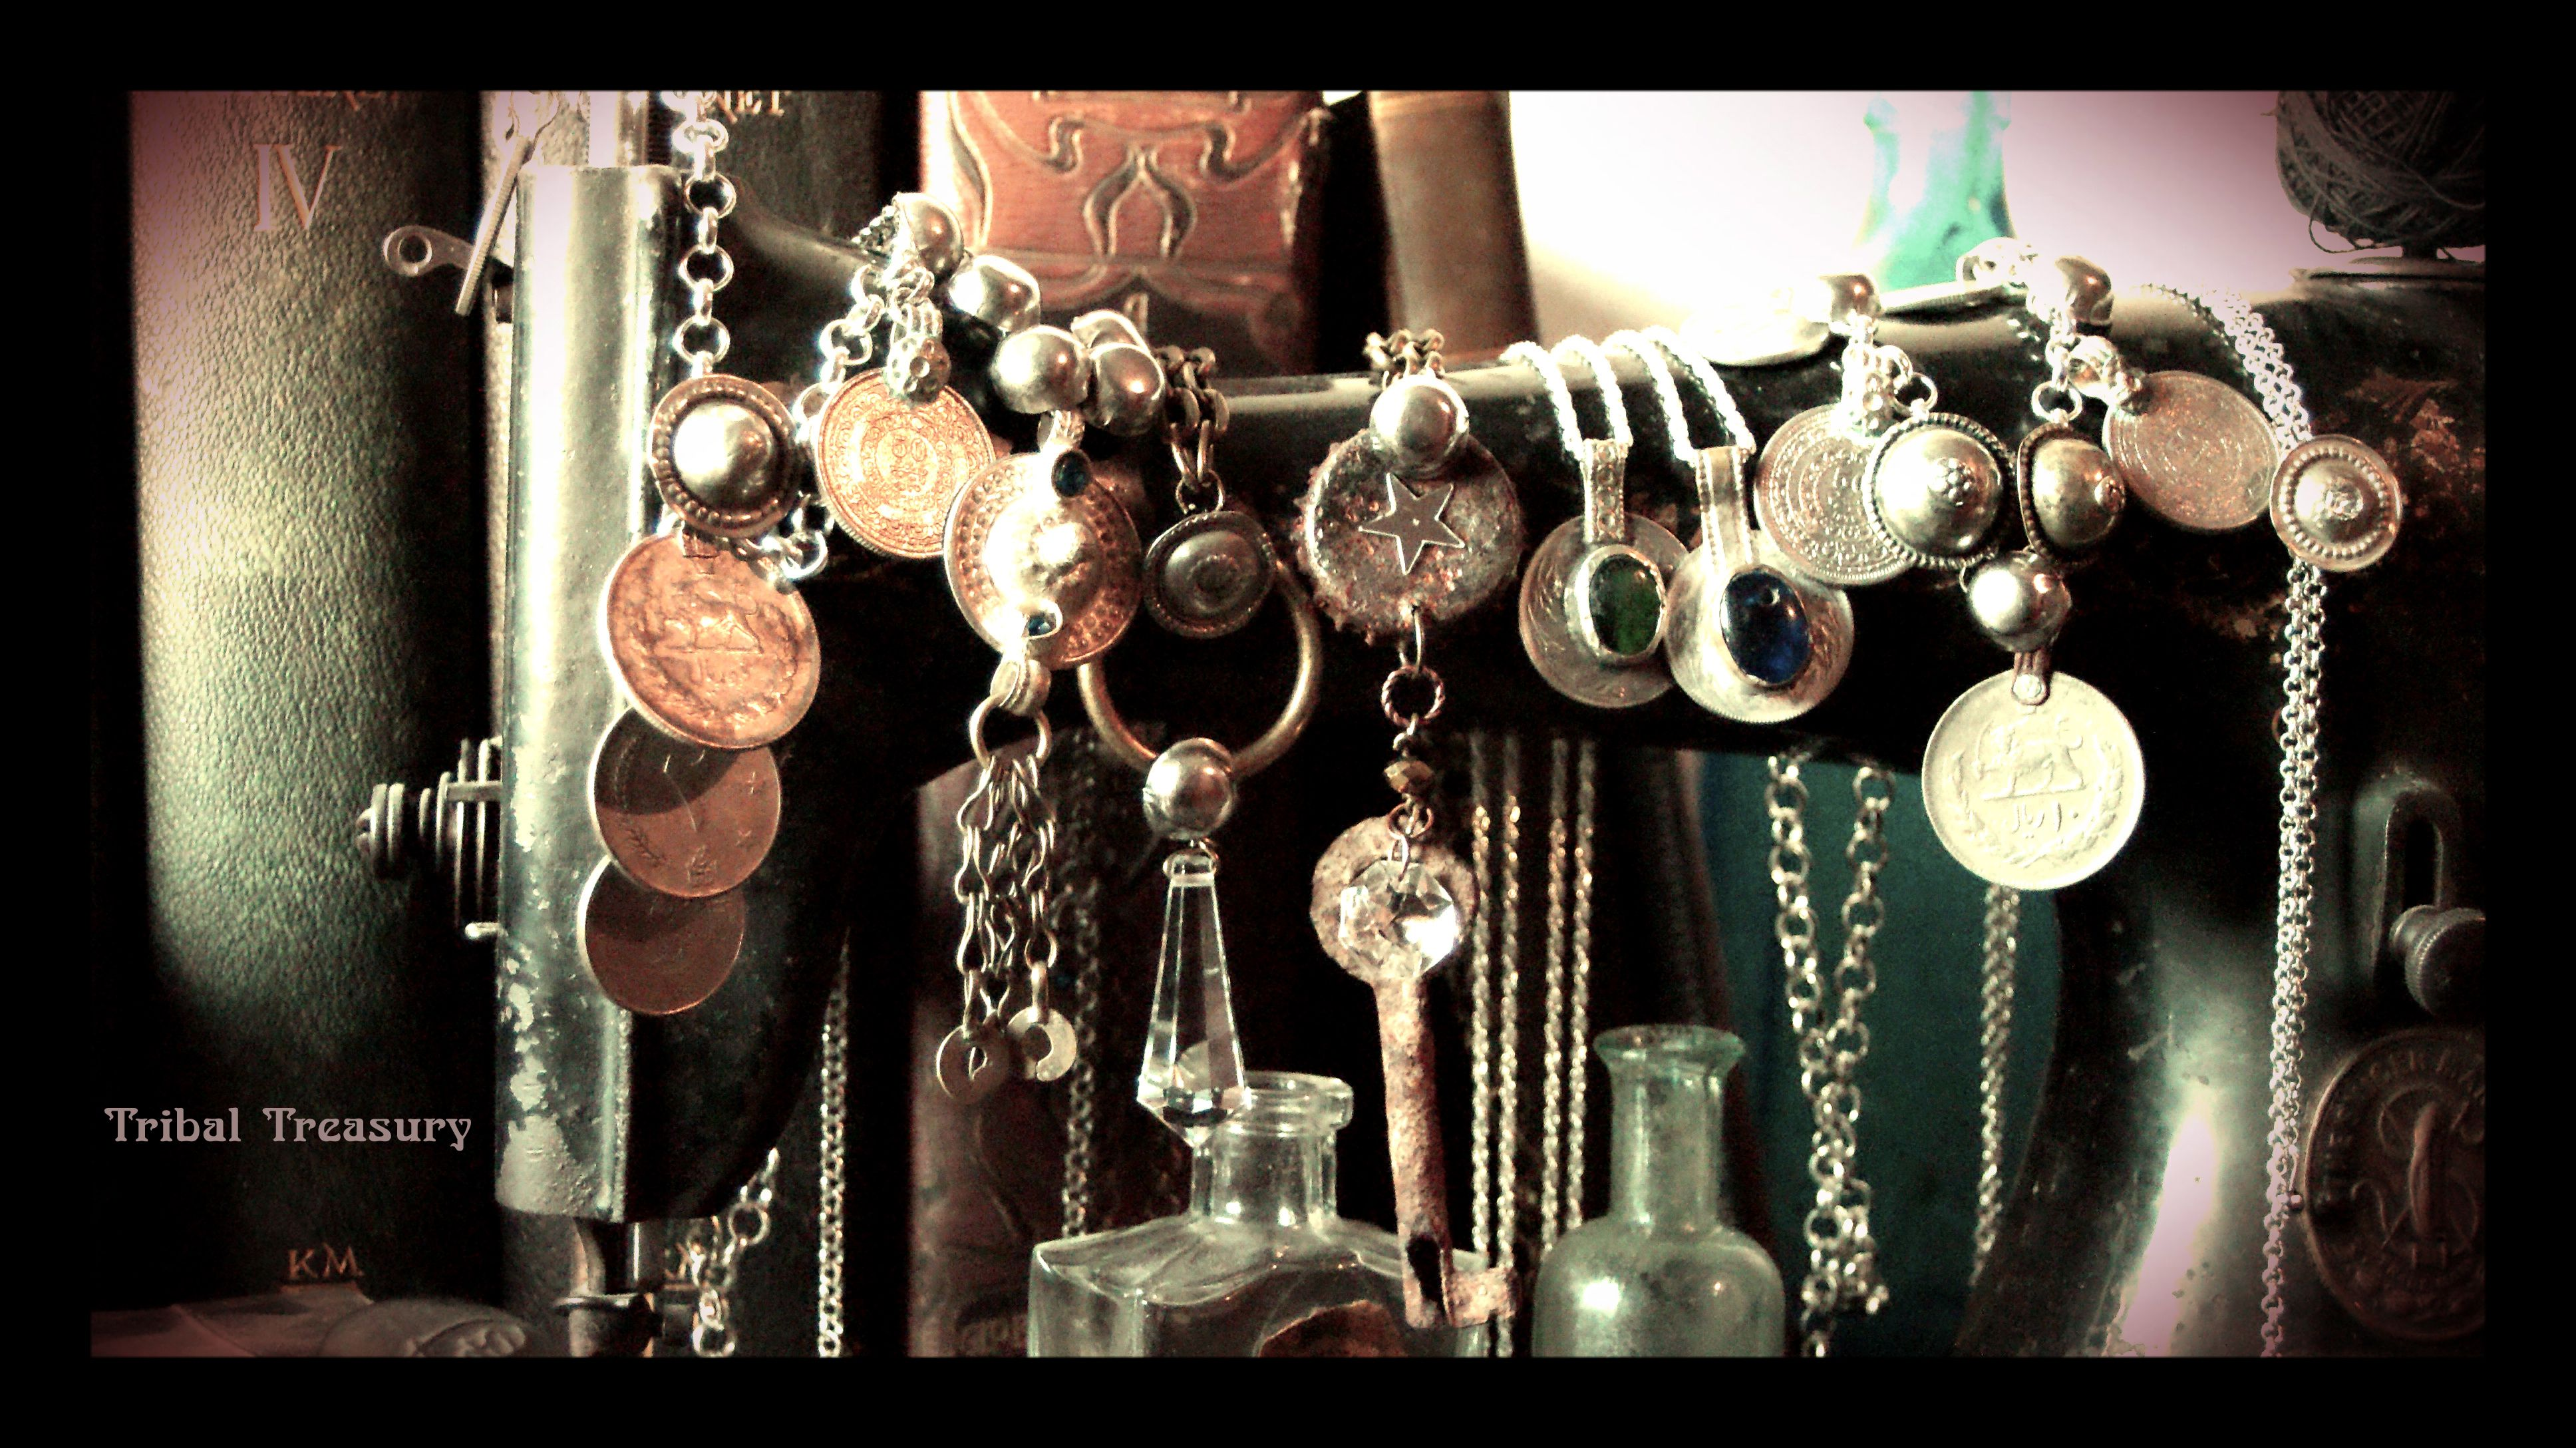 Tribal Treasury necklaces.  #necklace# #chain# #coin# #tribal# #rust# #key# #star# #ethno# #gipsy# #kuchi# #turkoman# #designer#